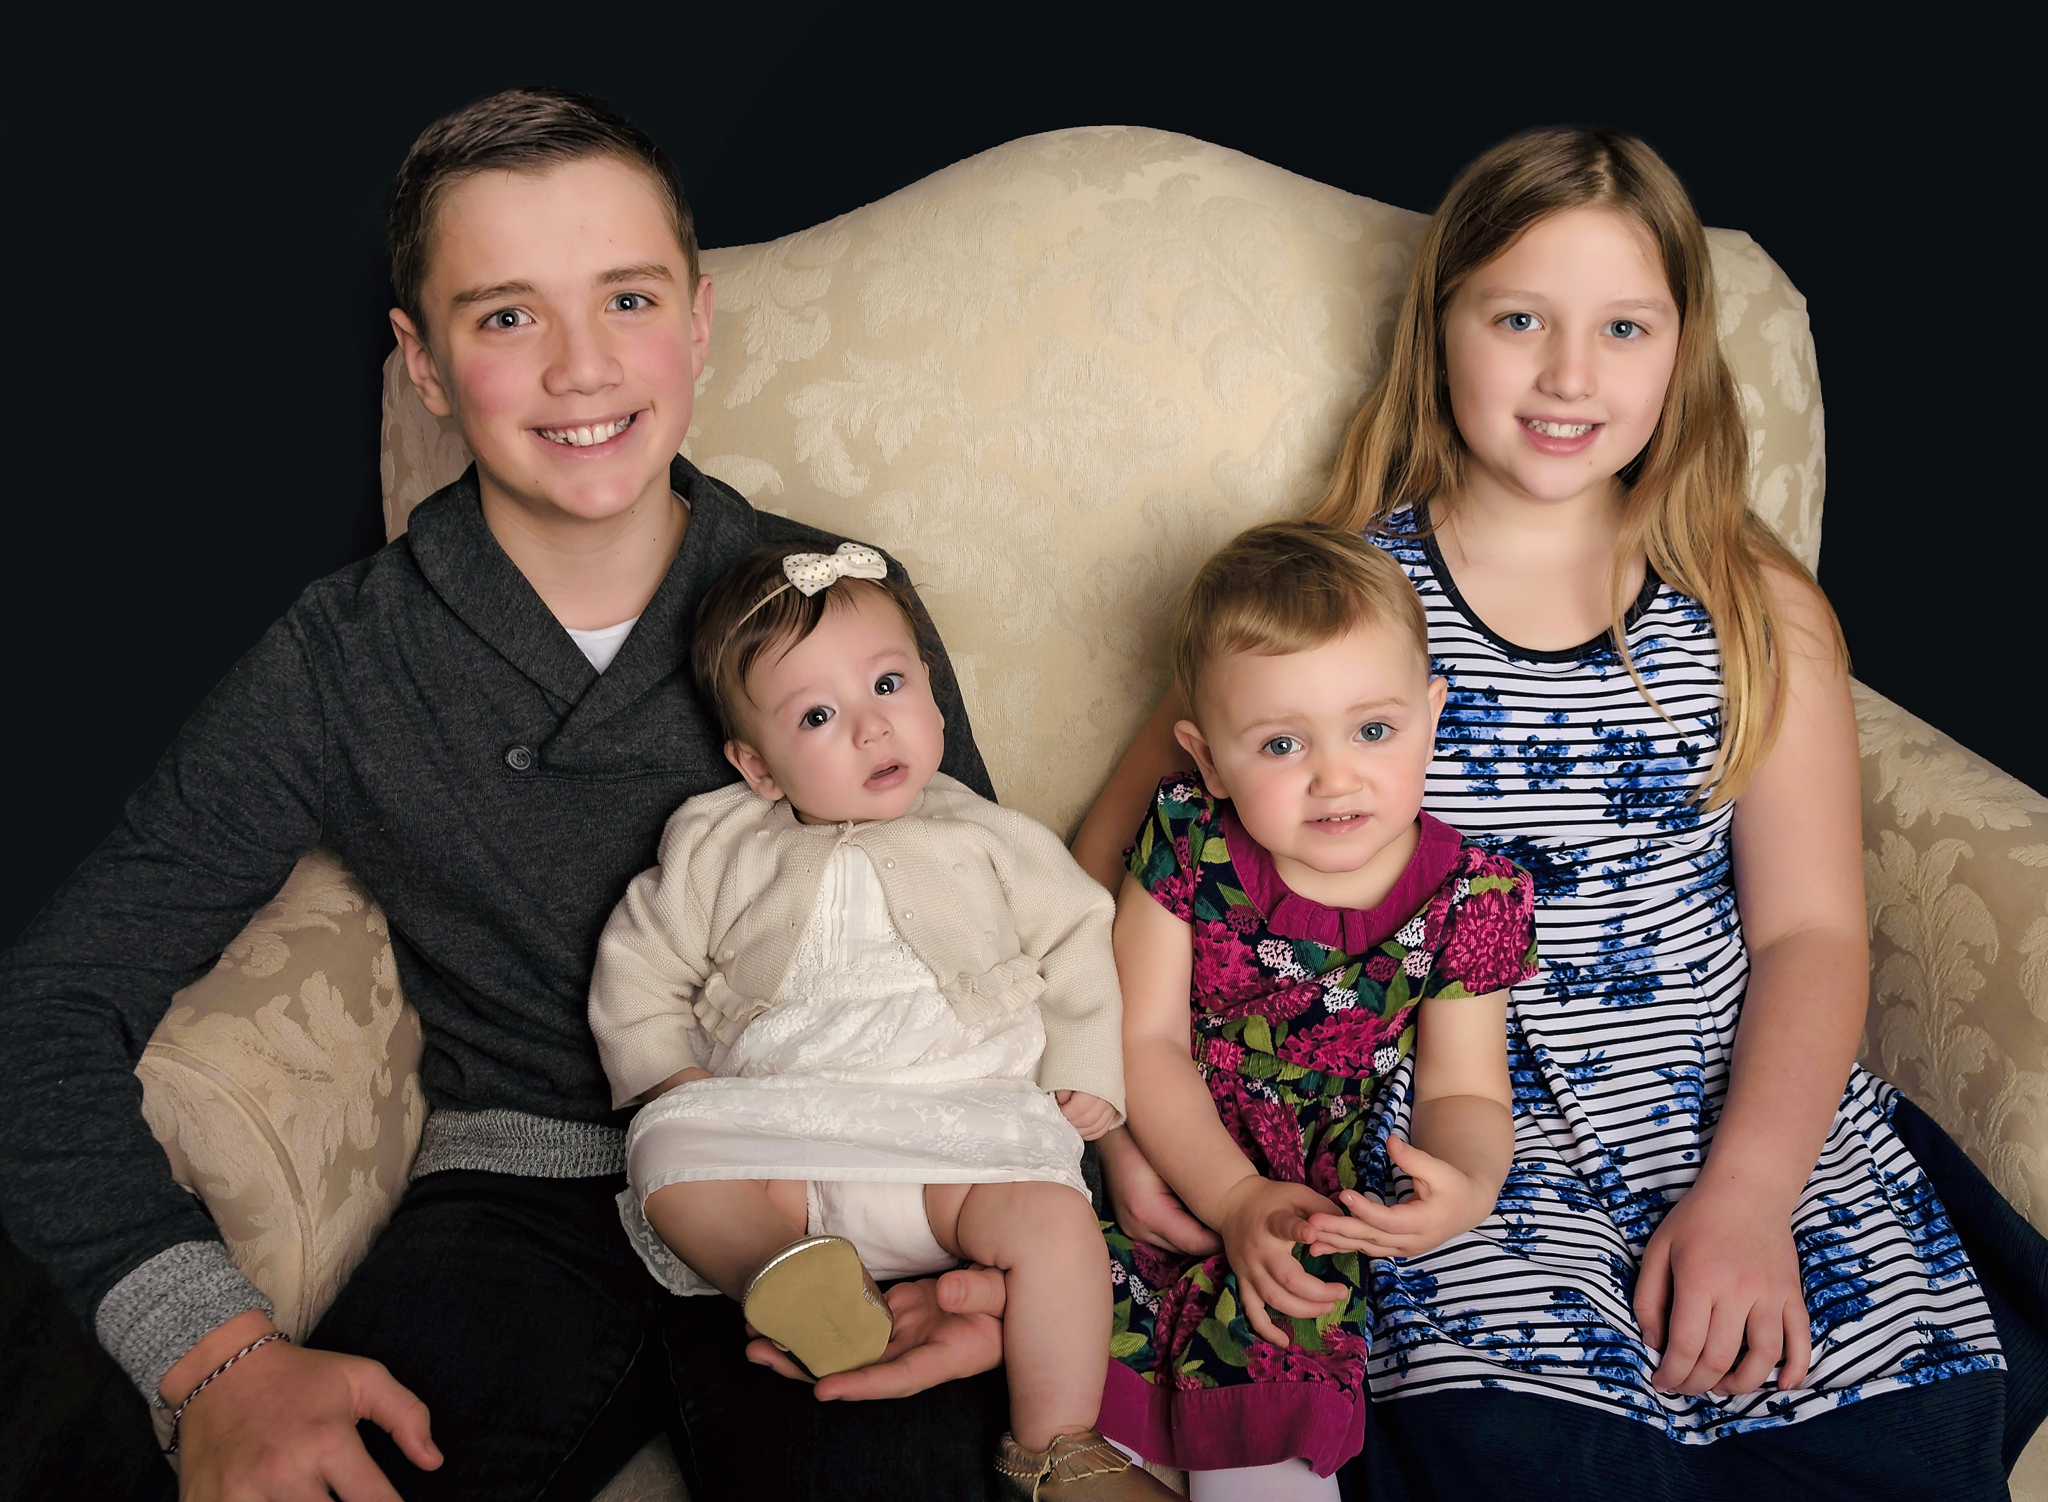 Grandchildren studio portrait